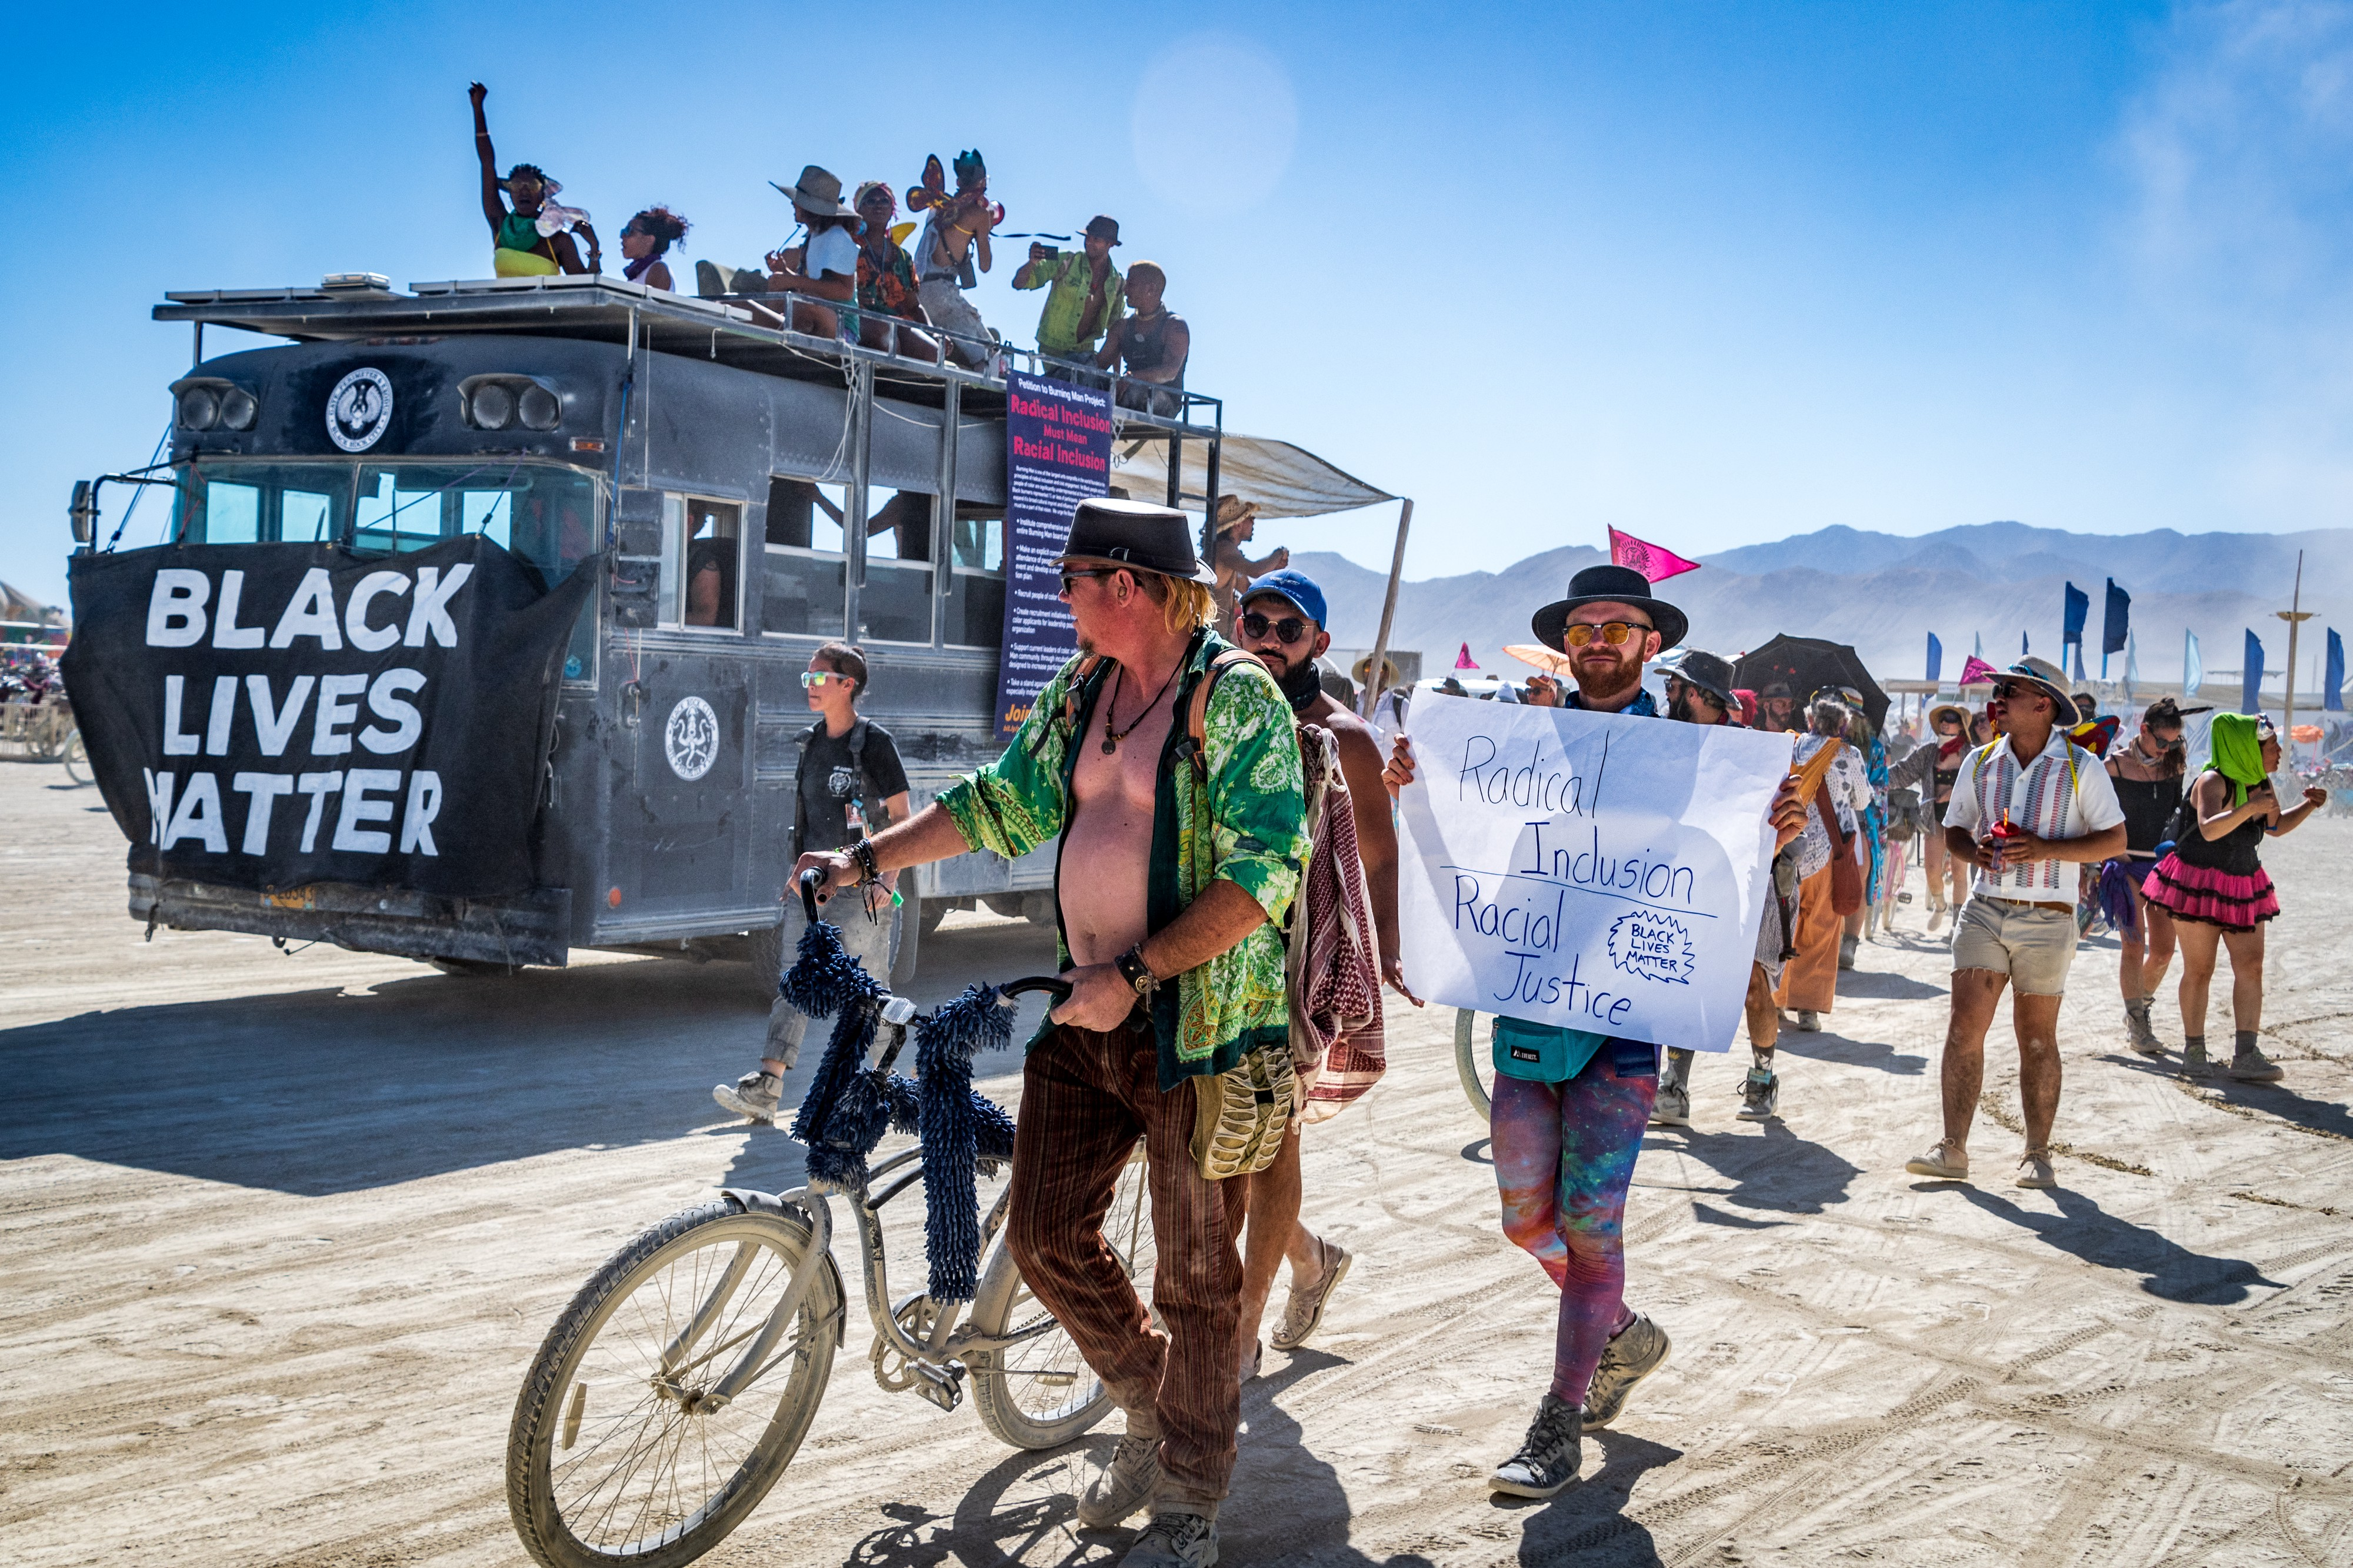 20 Epic Photos From Burning Man 2017 That Prove Its The